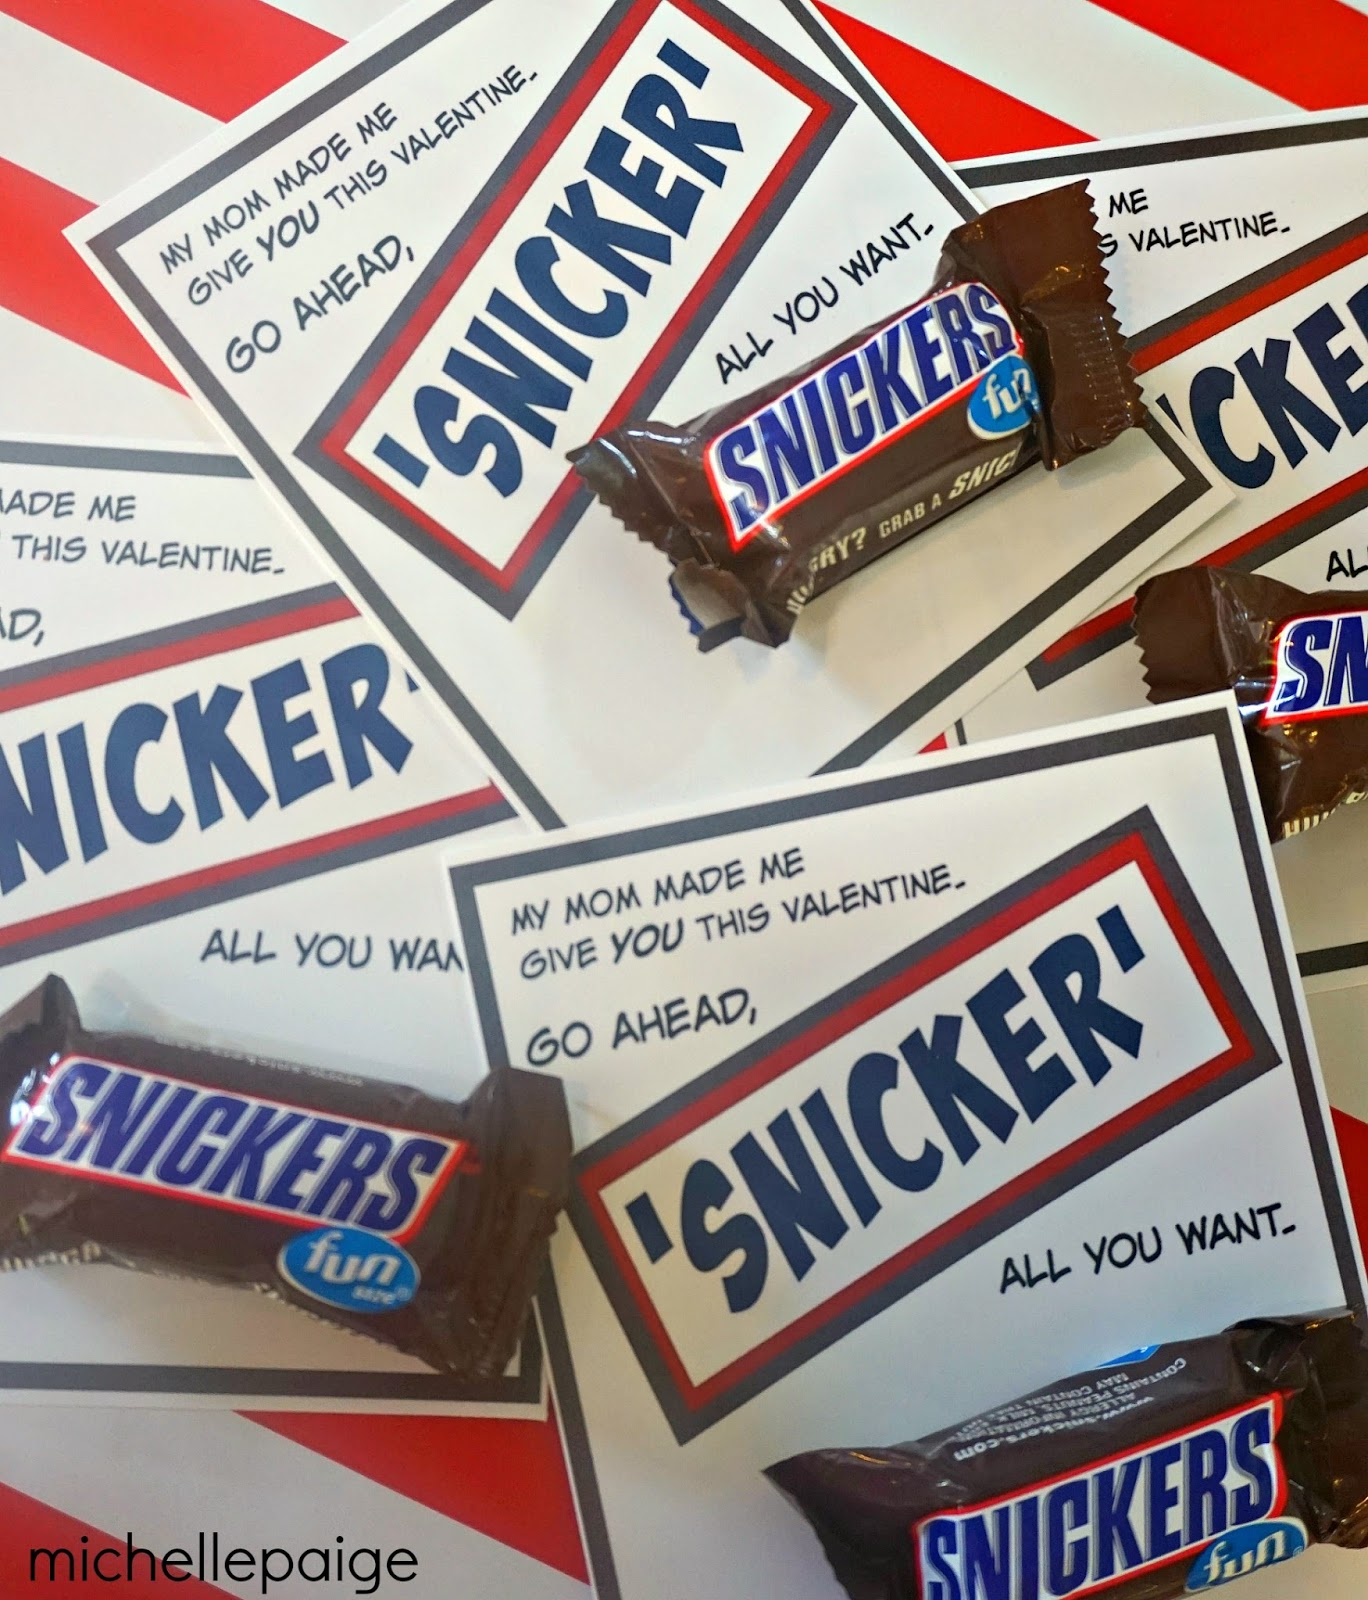 michelle paige blogs: Snickers Valentines for a Teenager